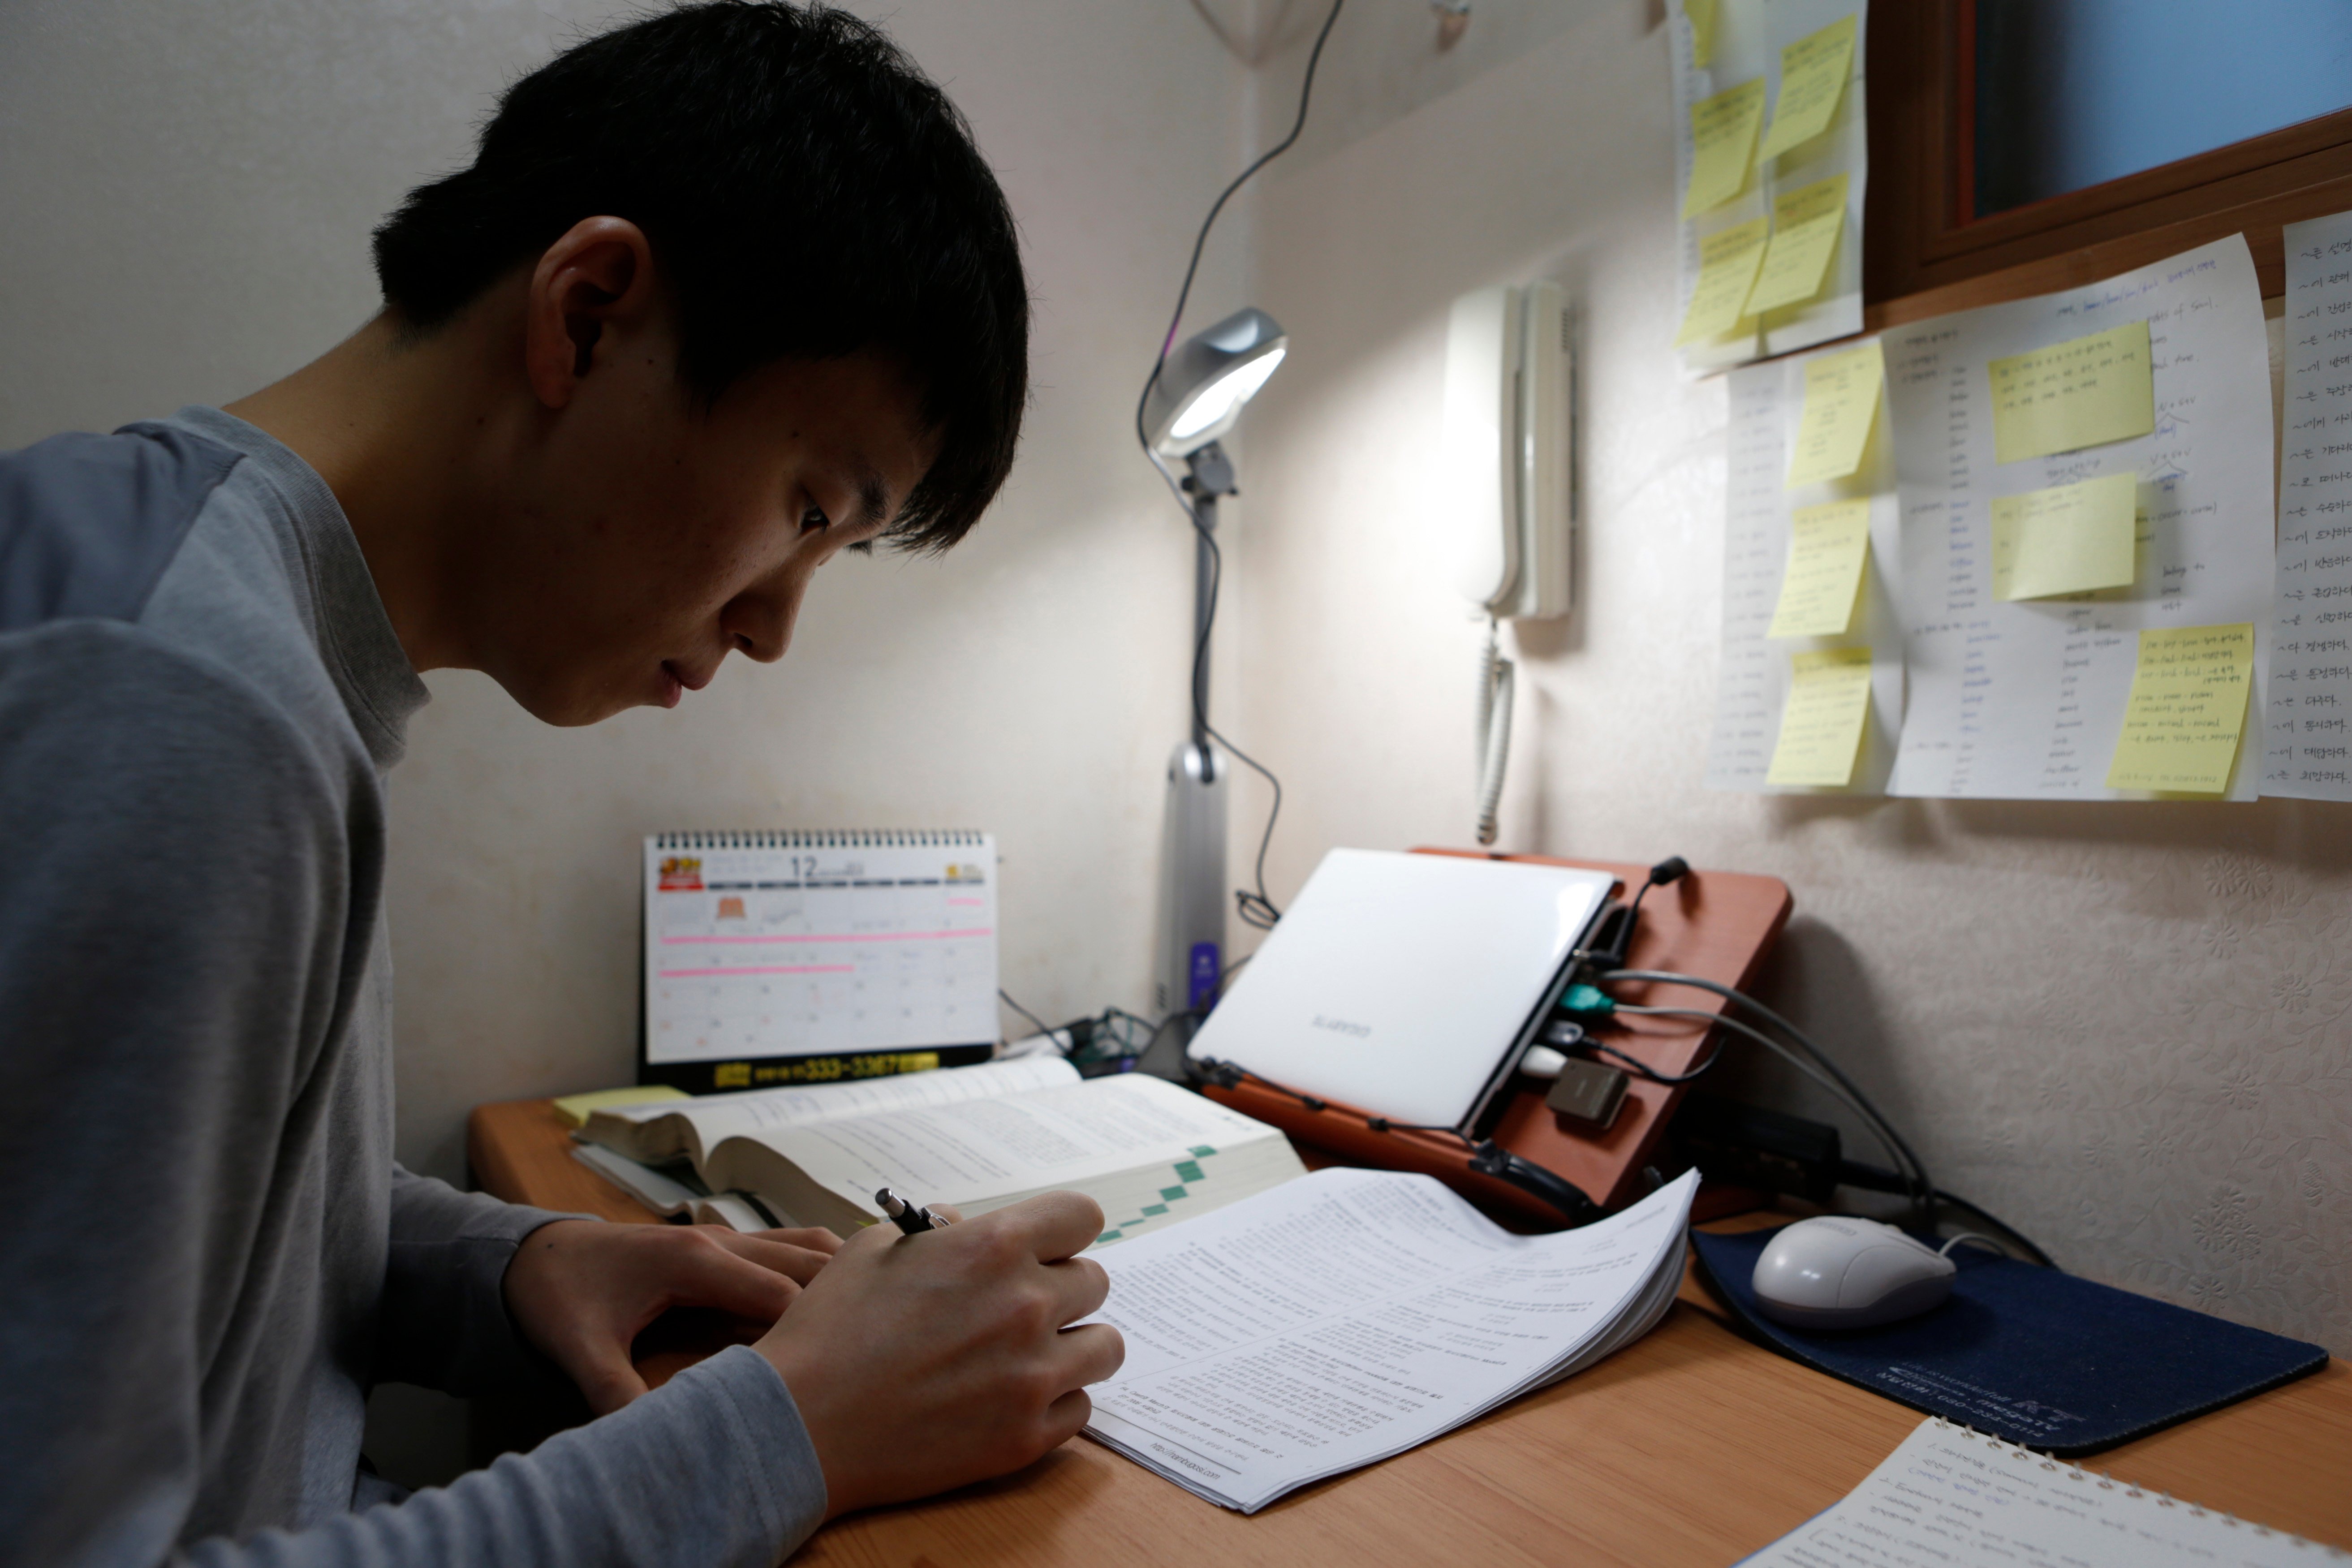 Kim Sa-myeong, 27, studies in his small room called a 'Goshiwon' in one of the many private dorms that house students cramming for exams in Seoul December 13, 2012. There are 30,000 residents of a drab neighbourhood of the South Korean capital known as Exam Village, where people preparing for tests for low-level civil service jobs have gravitated for years. There is a growing sense of frustration among the young in a country where there are simply not enough jobs to go round, especially for graduates of less prestigious universities whose options are largely limited to the public sector. In Exam Village, or Goshichon in Korean, there were so many young people who wanted to cast early ballots last week that extra polling booths had to be brought in. Picture taken December 13, 2012. To match Analysis REUTERS/Lee Jae-Won